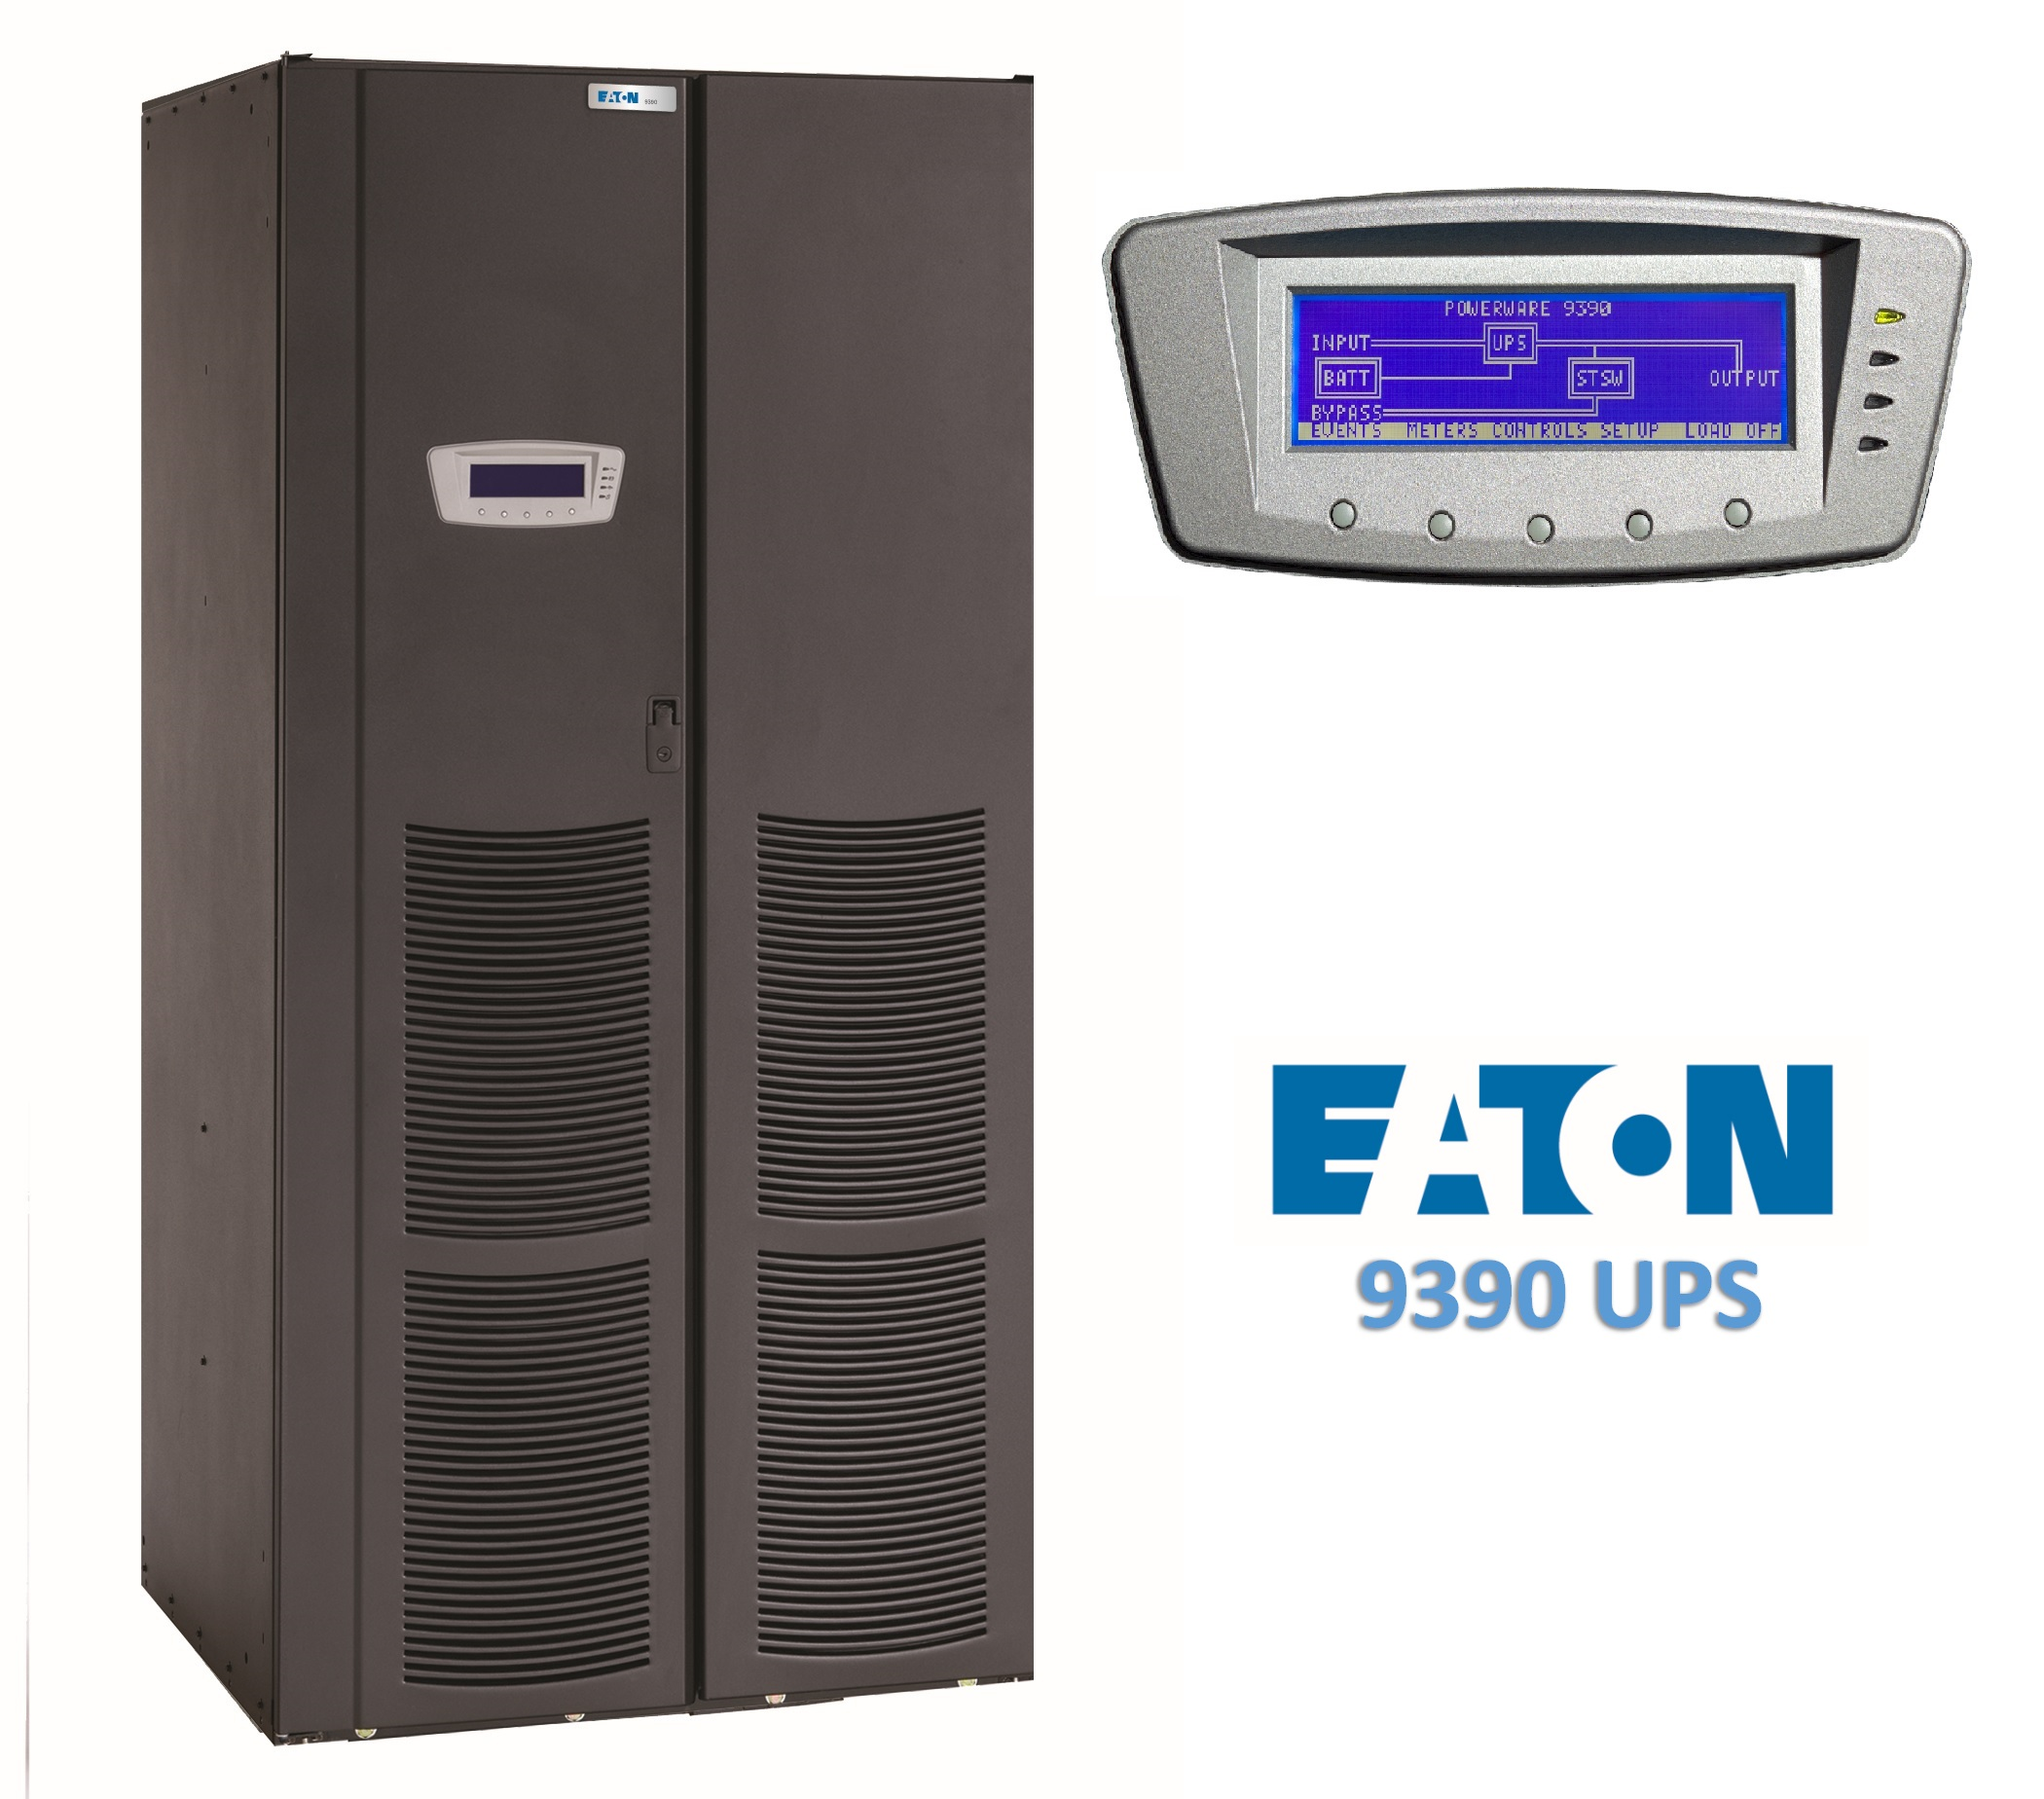 management mount rackmount rack powerware ups systems family discover solutions power ecomp mge eaton